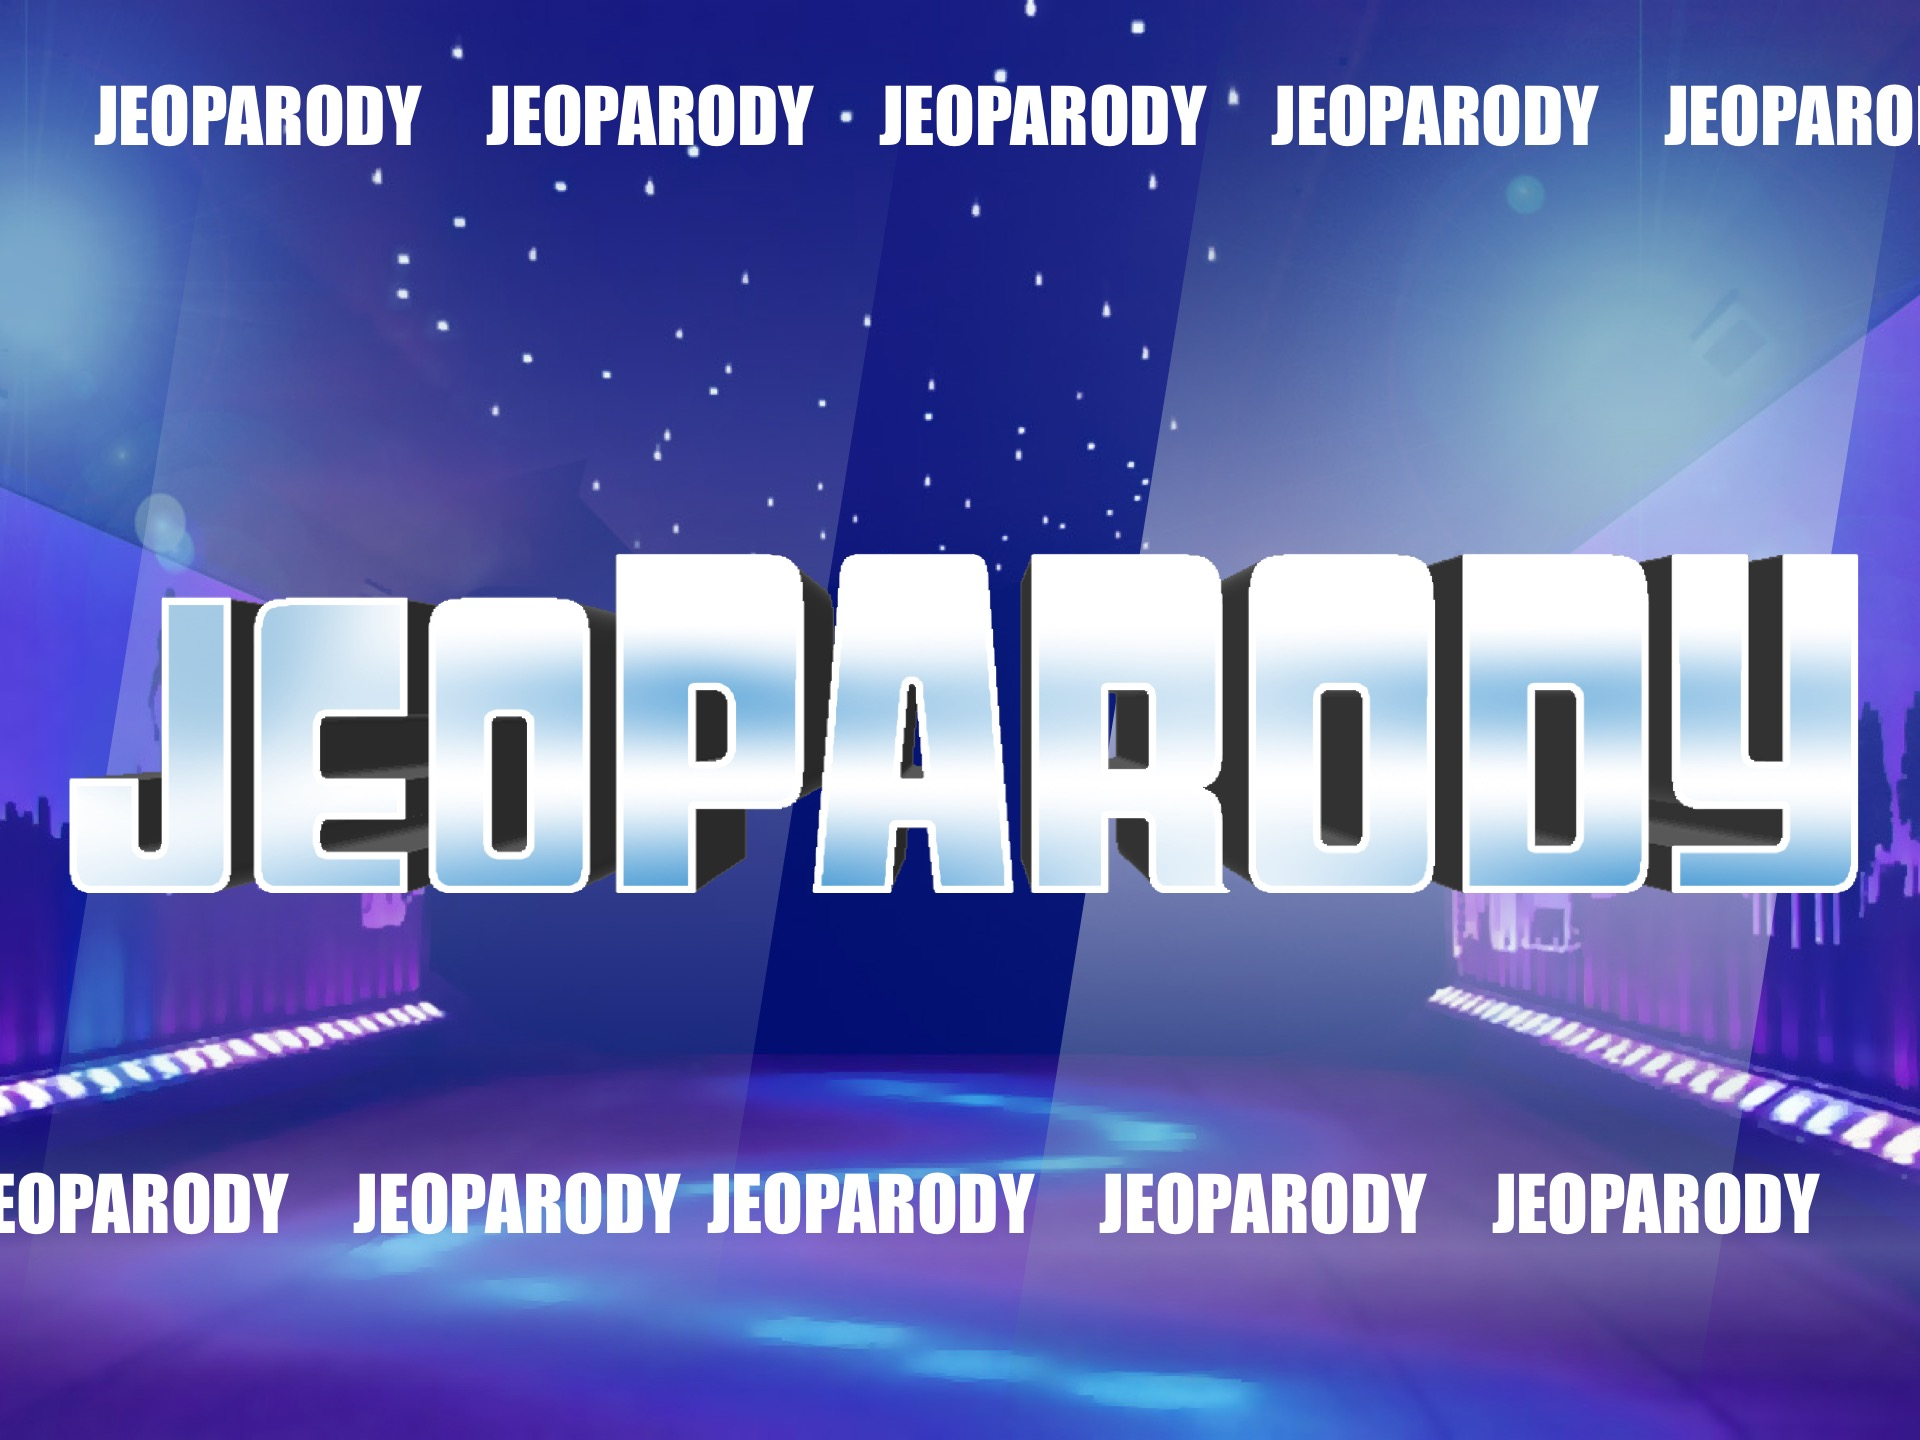 jeopardy powerpoint game template - youth downloadsyouth downloads, Powerpoint templates